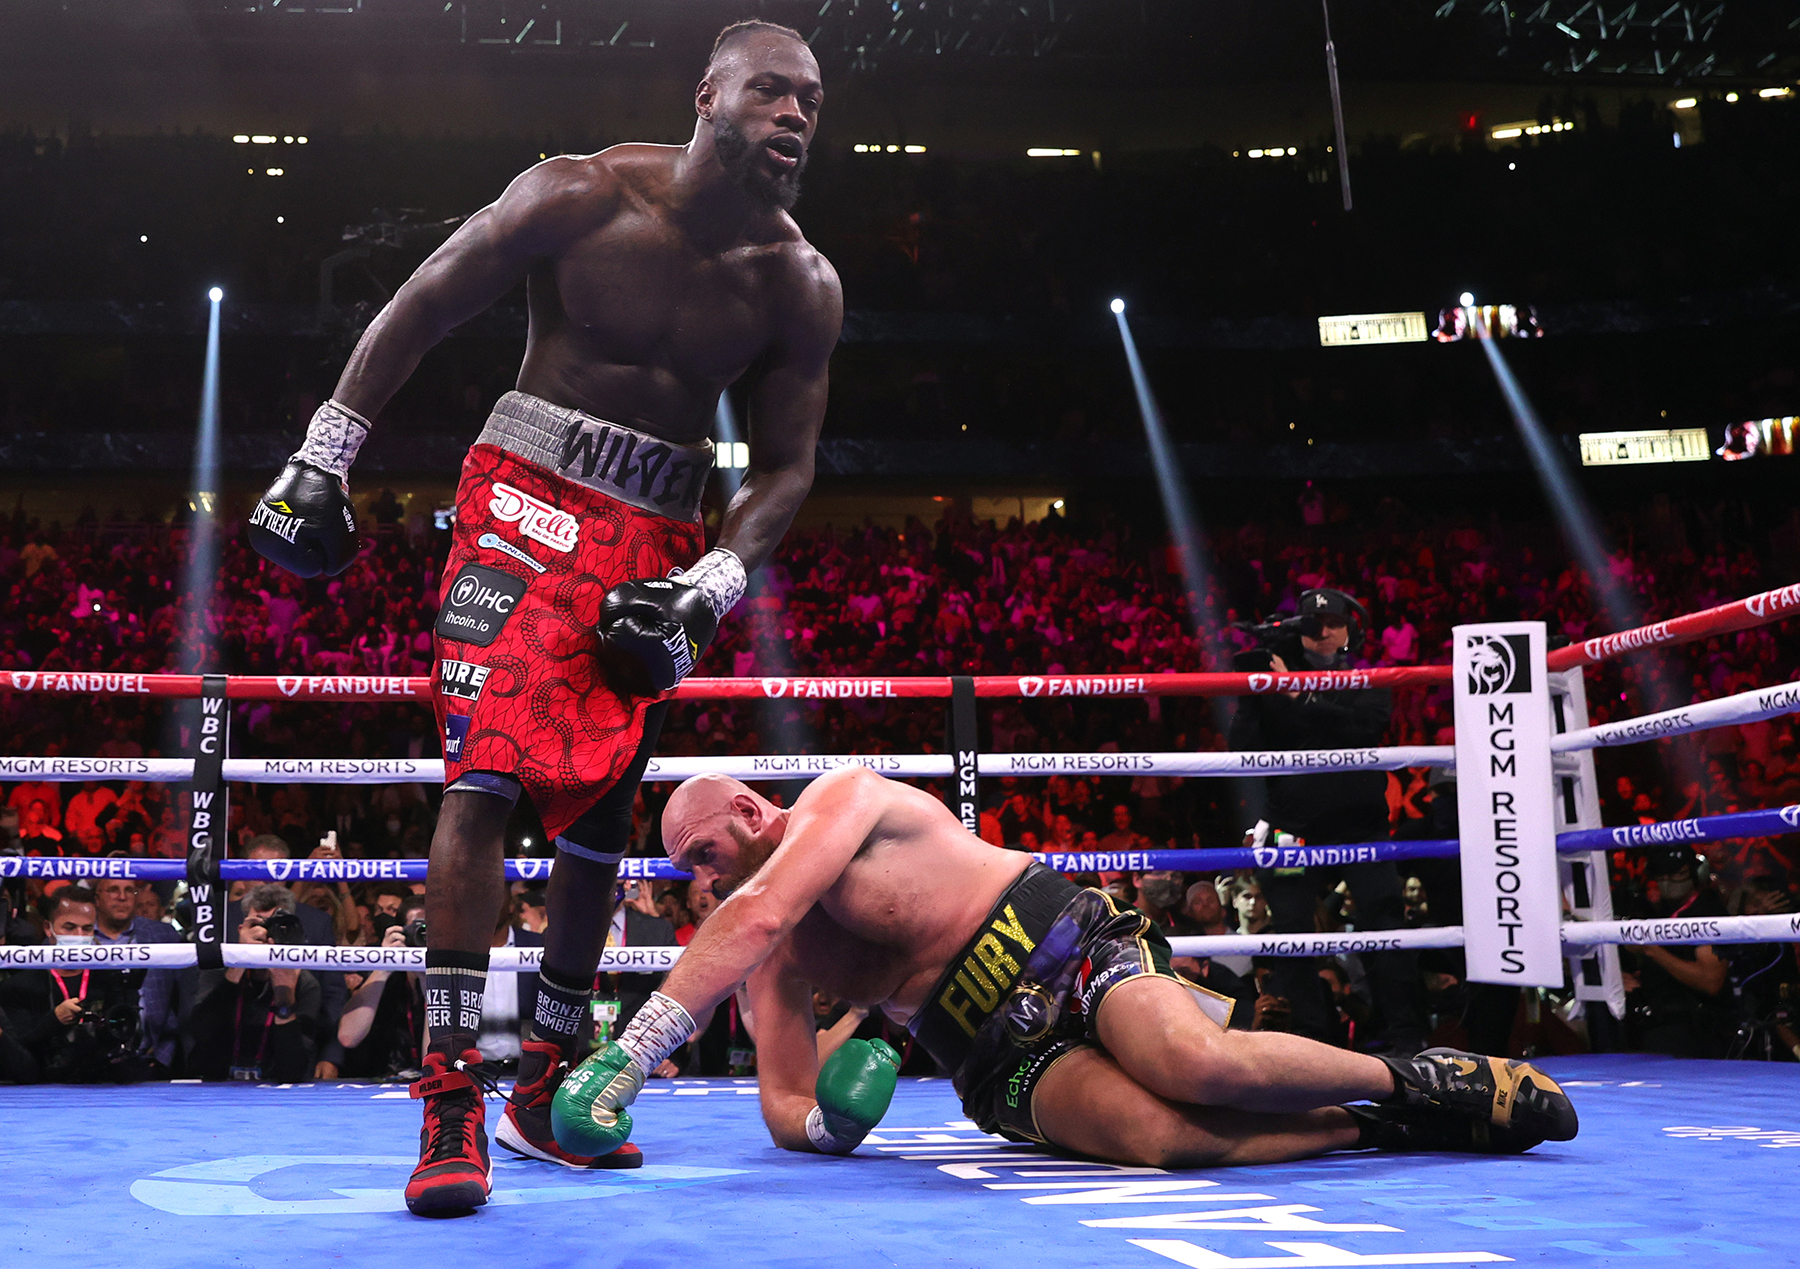 LAS VEGAS, NEVADA - OCTOBER 09: Deontay Wilder (L) knocks down Tyson Fury (R) during their fight for The Ring and WBC heavyweight titles at T-Mobile Arena on October 09, 2021 in Las Vegas, Nevada. (Photo by Mikey Williams/Top Rank Inc via Getty Images)